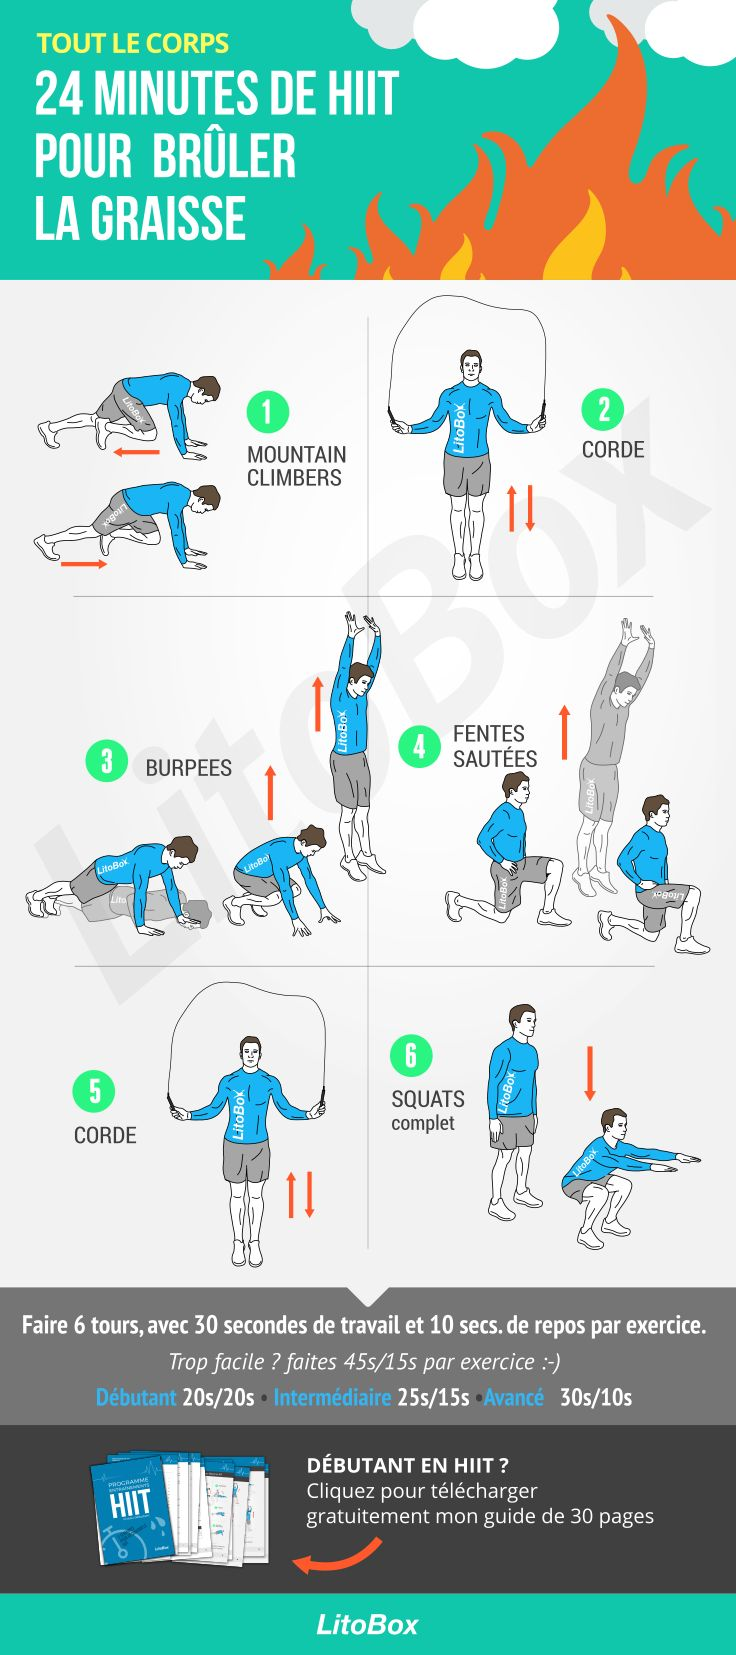 HIIT brûle graisse avec une corde à sauter ! http://www.weightlossjumpstars.com/types-of-exercise-to-lose-weight/